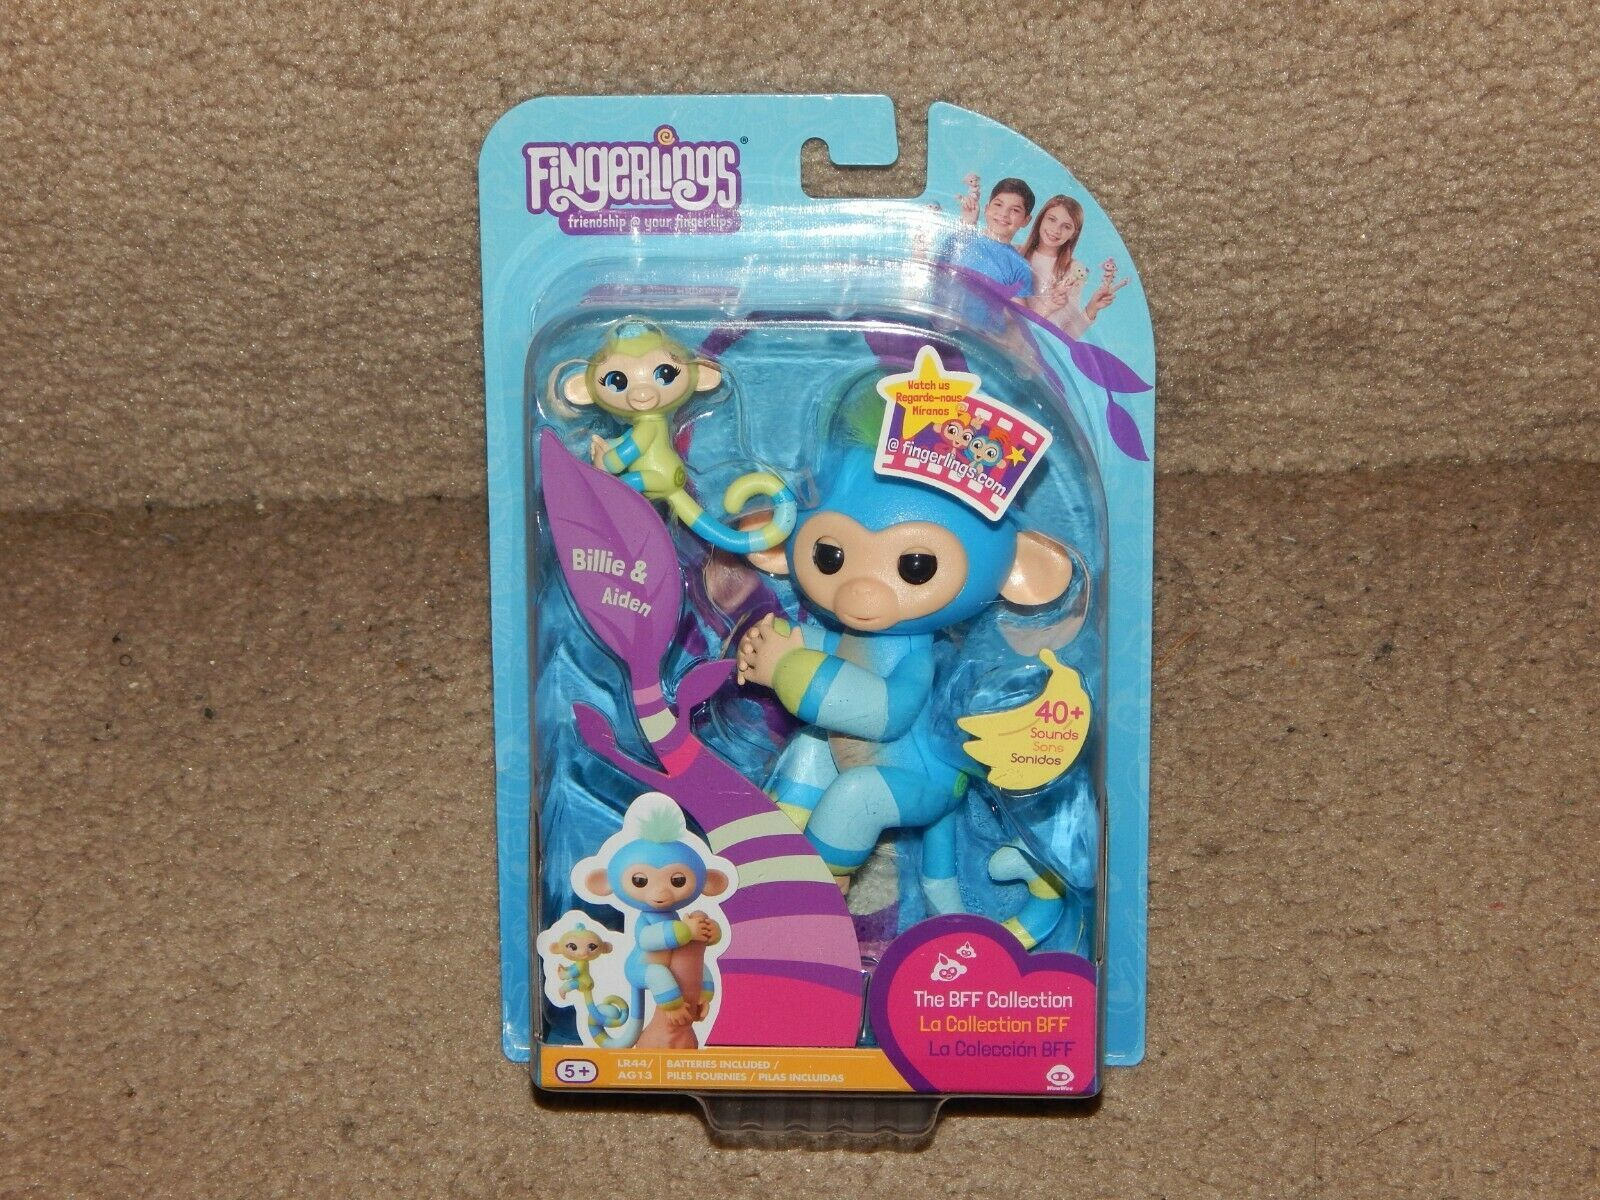 New! Fingerlings BFF Collection Billie & Aiden + LR44 Batteries Free Shipping 5+